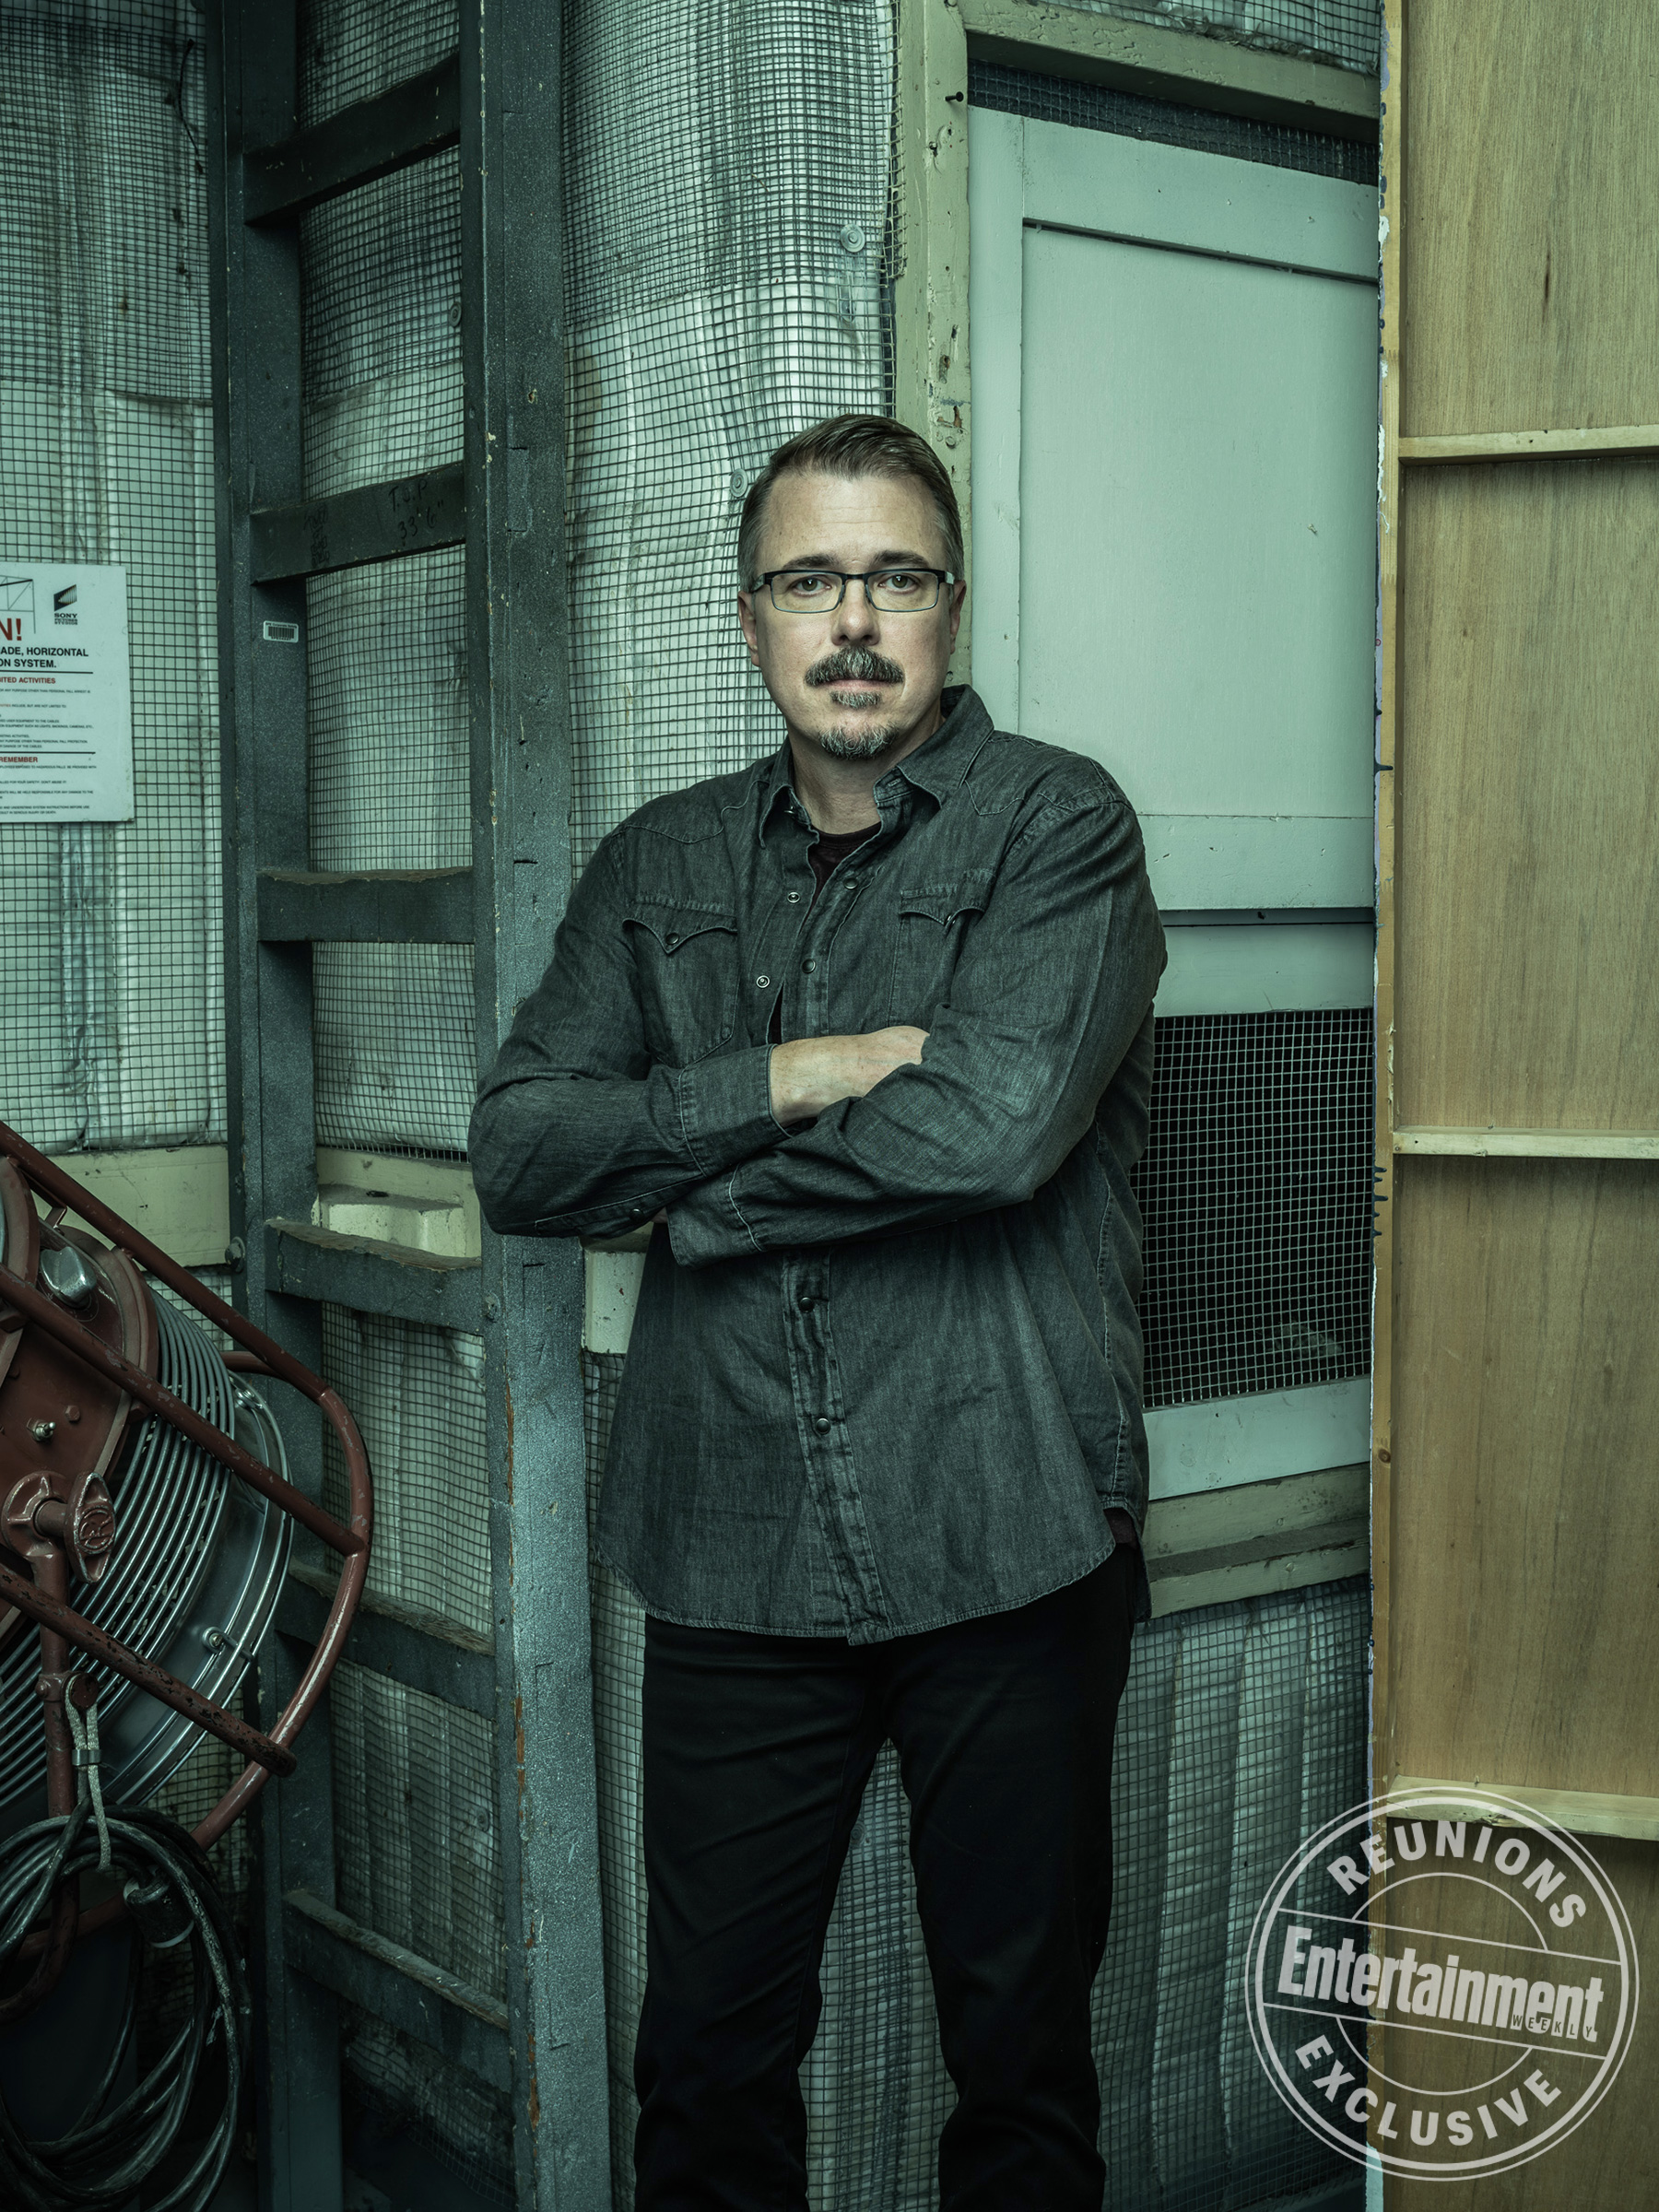 Vince Gilligan (Breaking Bad creator)